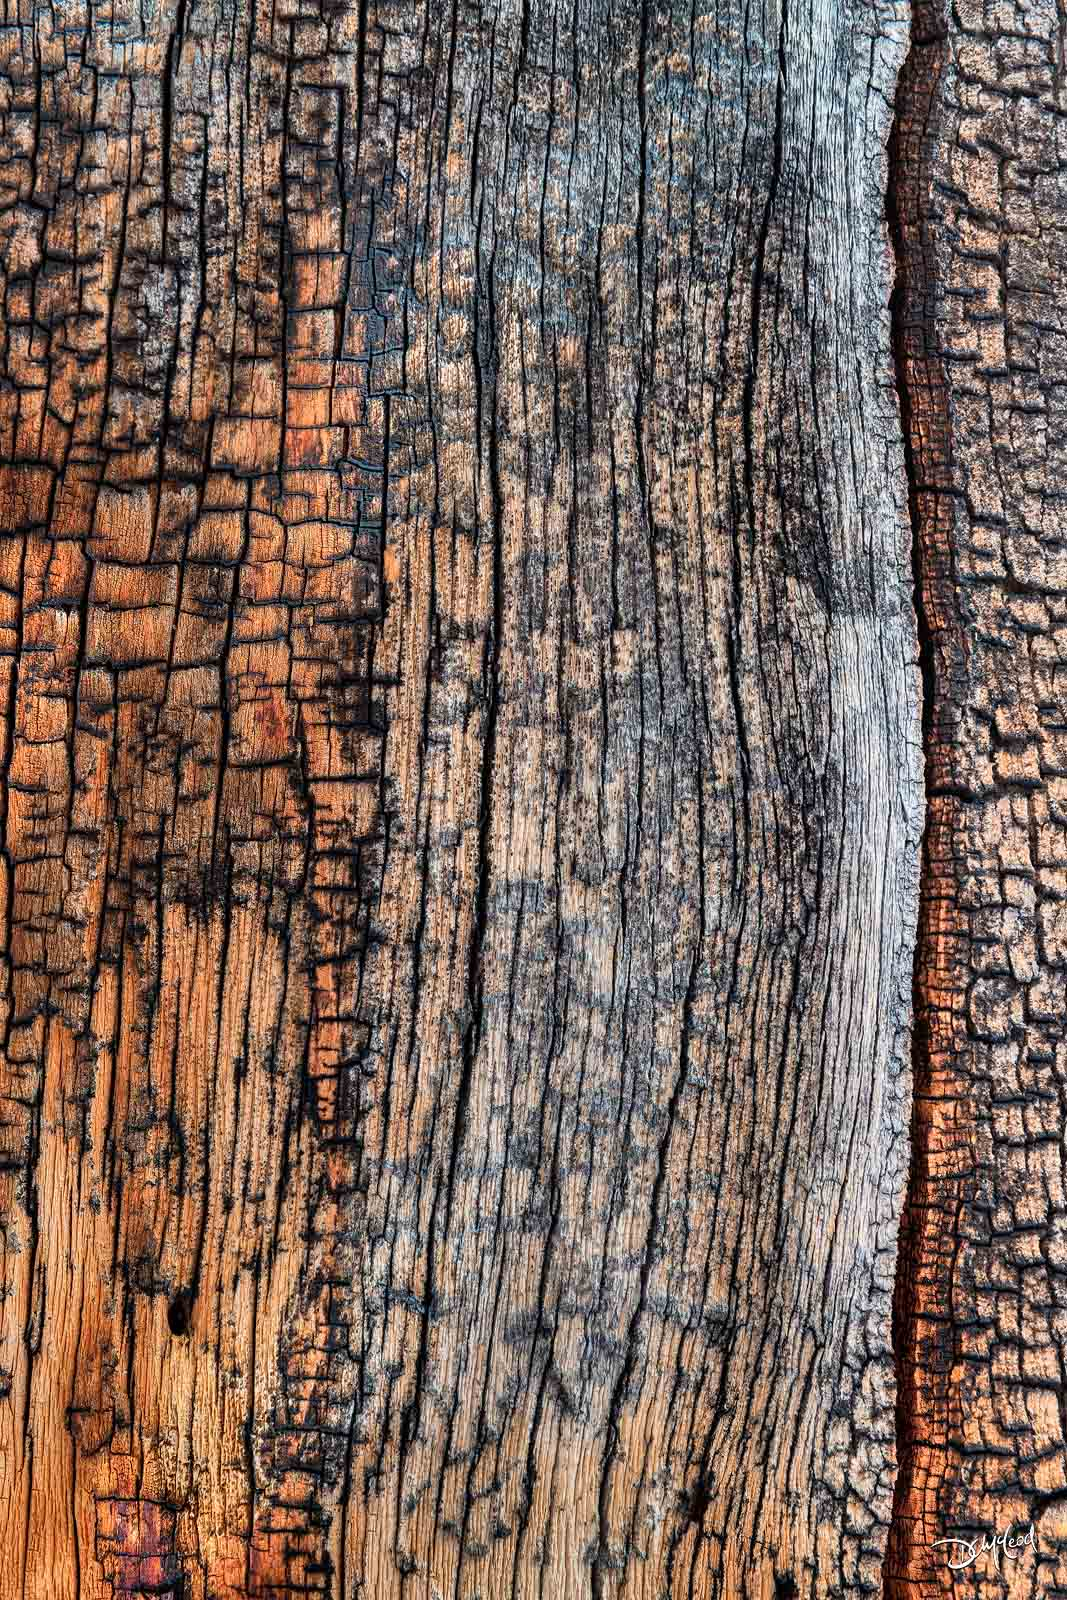 tree trunk, abstract, forests, banff, photo